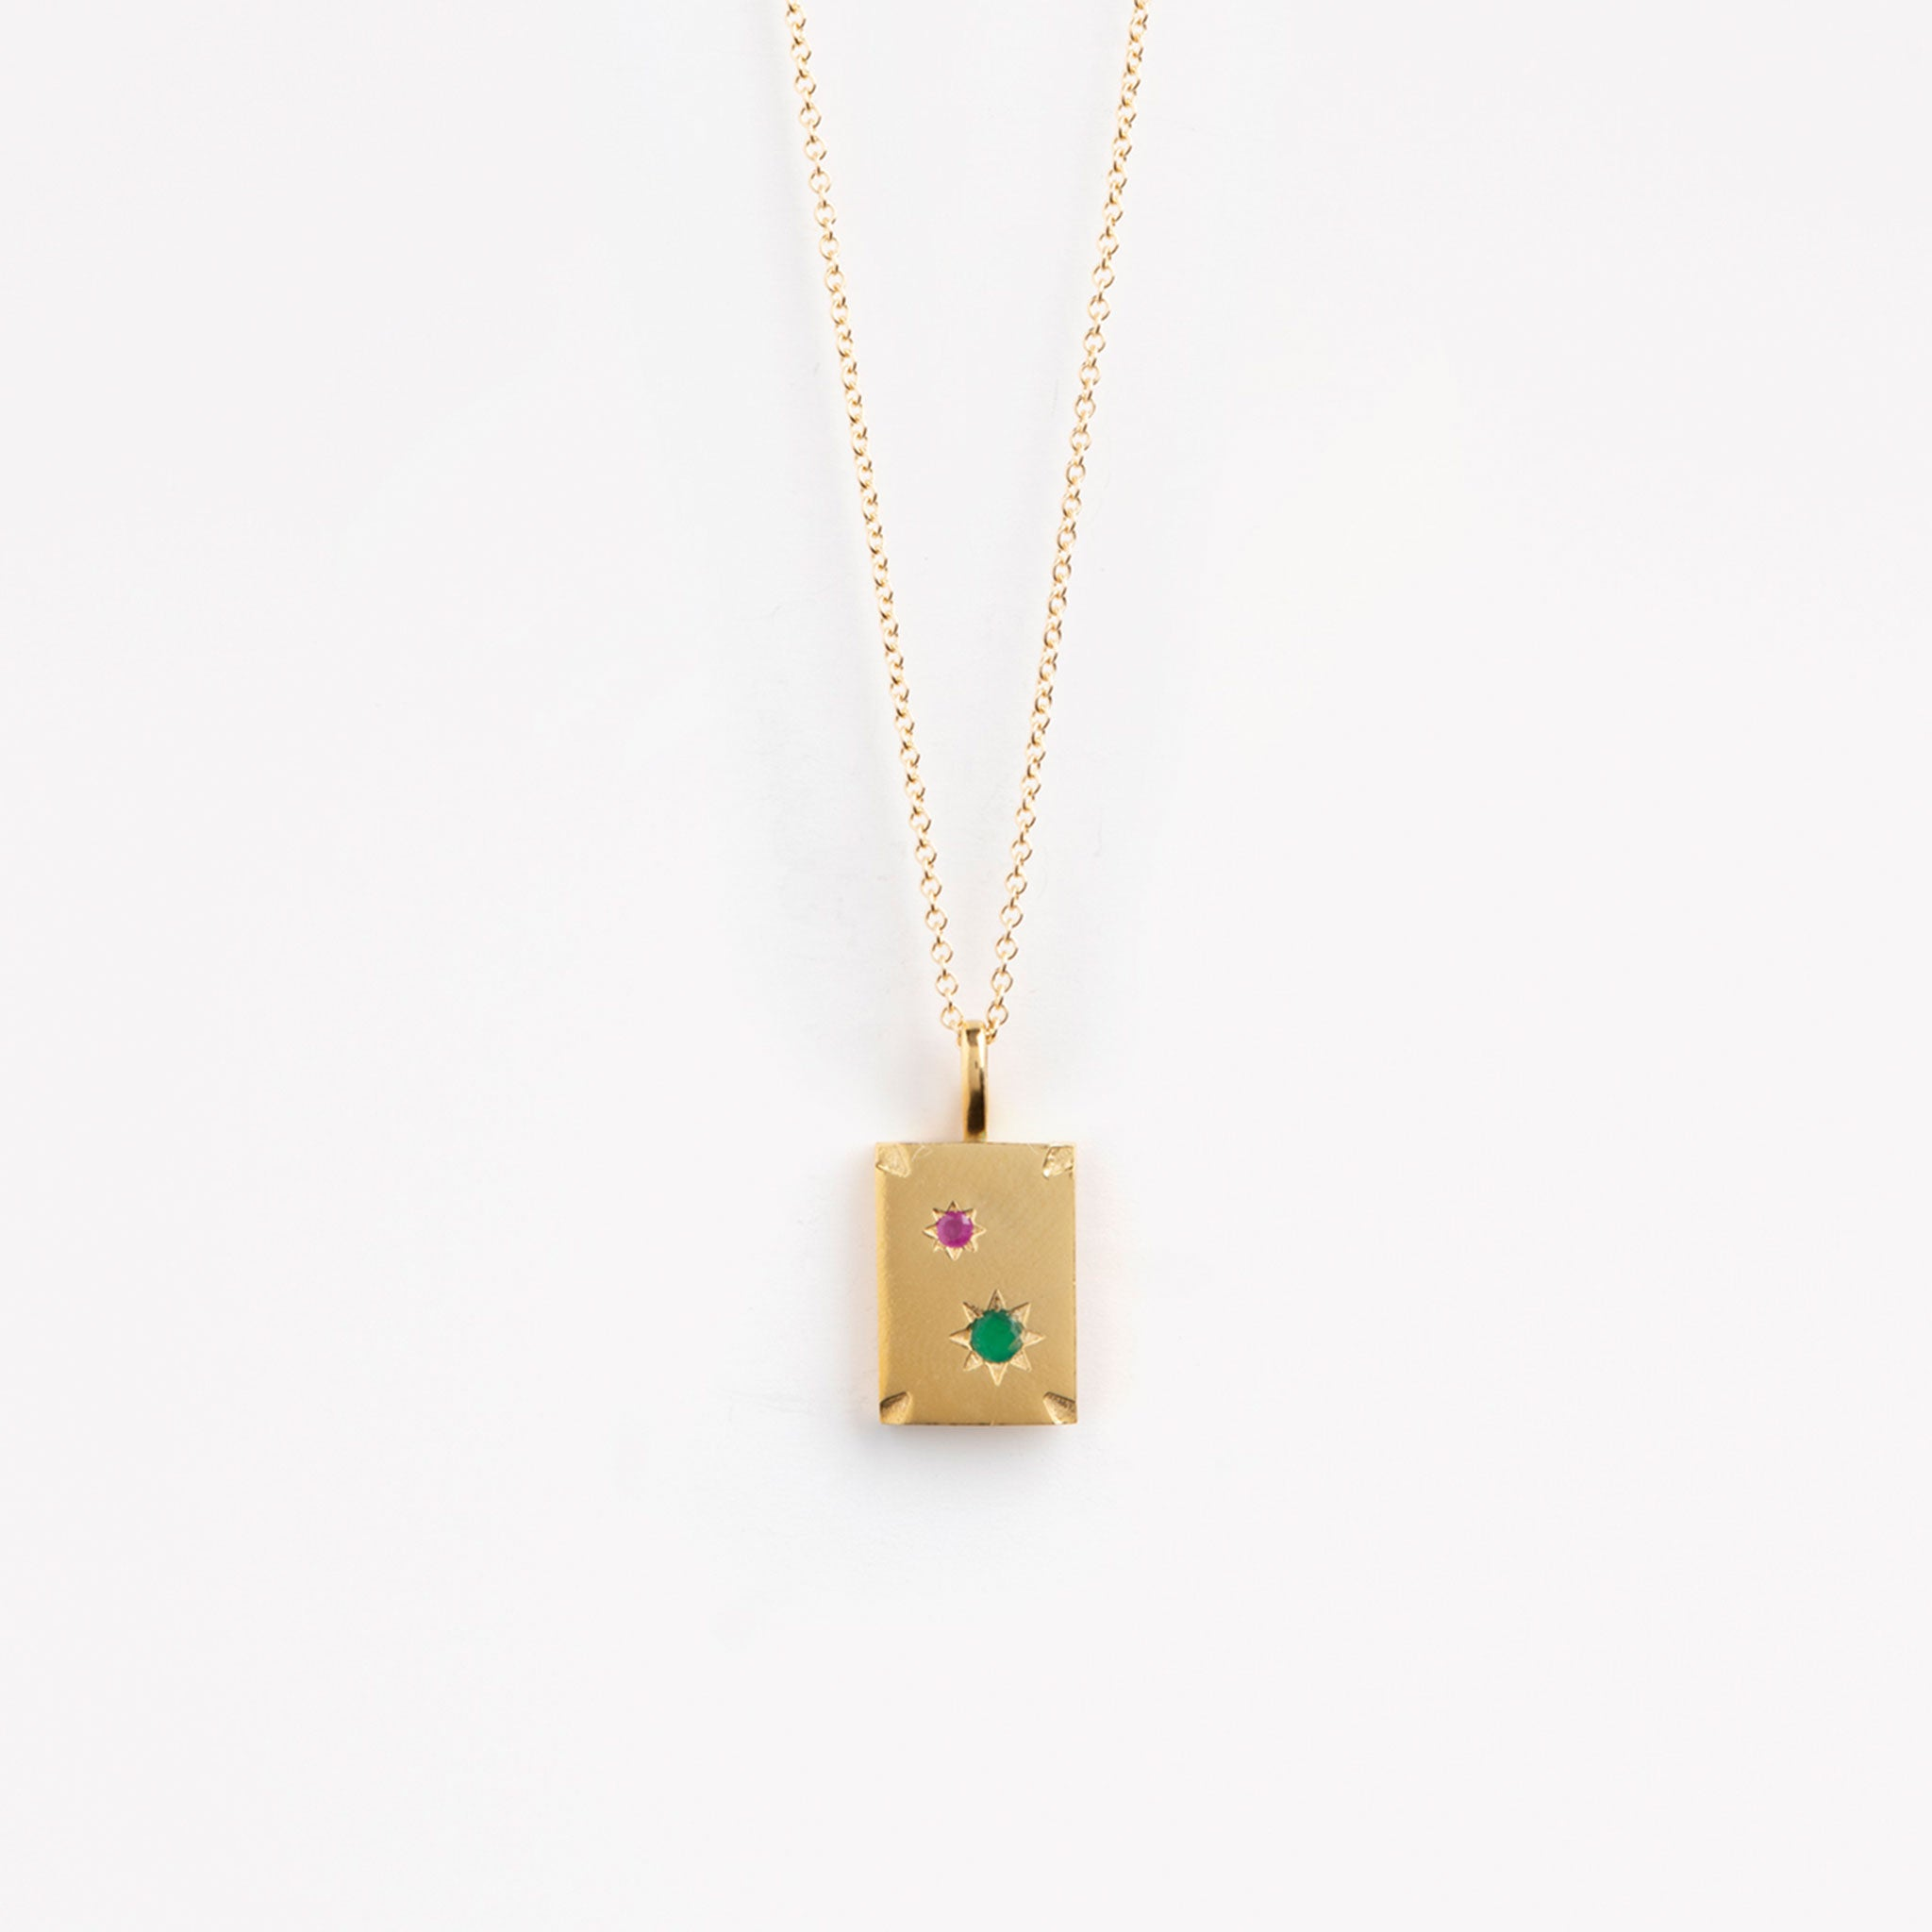 Wanderlust Life gold chain necklace with star-set ruby & emerald gold rectangular tab. Available in a 14k gold fill rope chain necklace and 14k gold fill fine gold chain necklace. The perfect gold chain gemstone necklace for gifting.